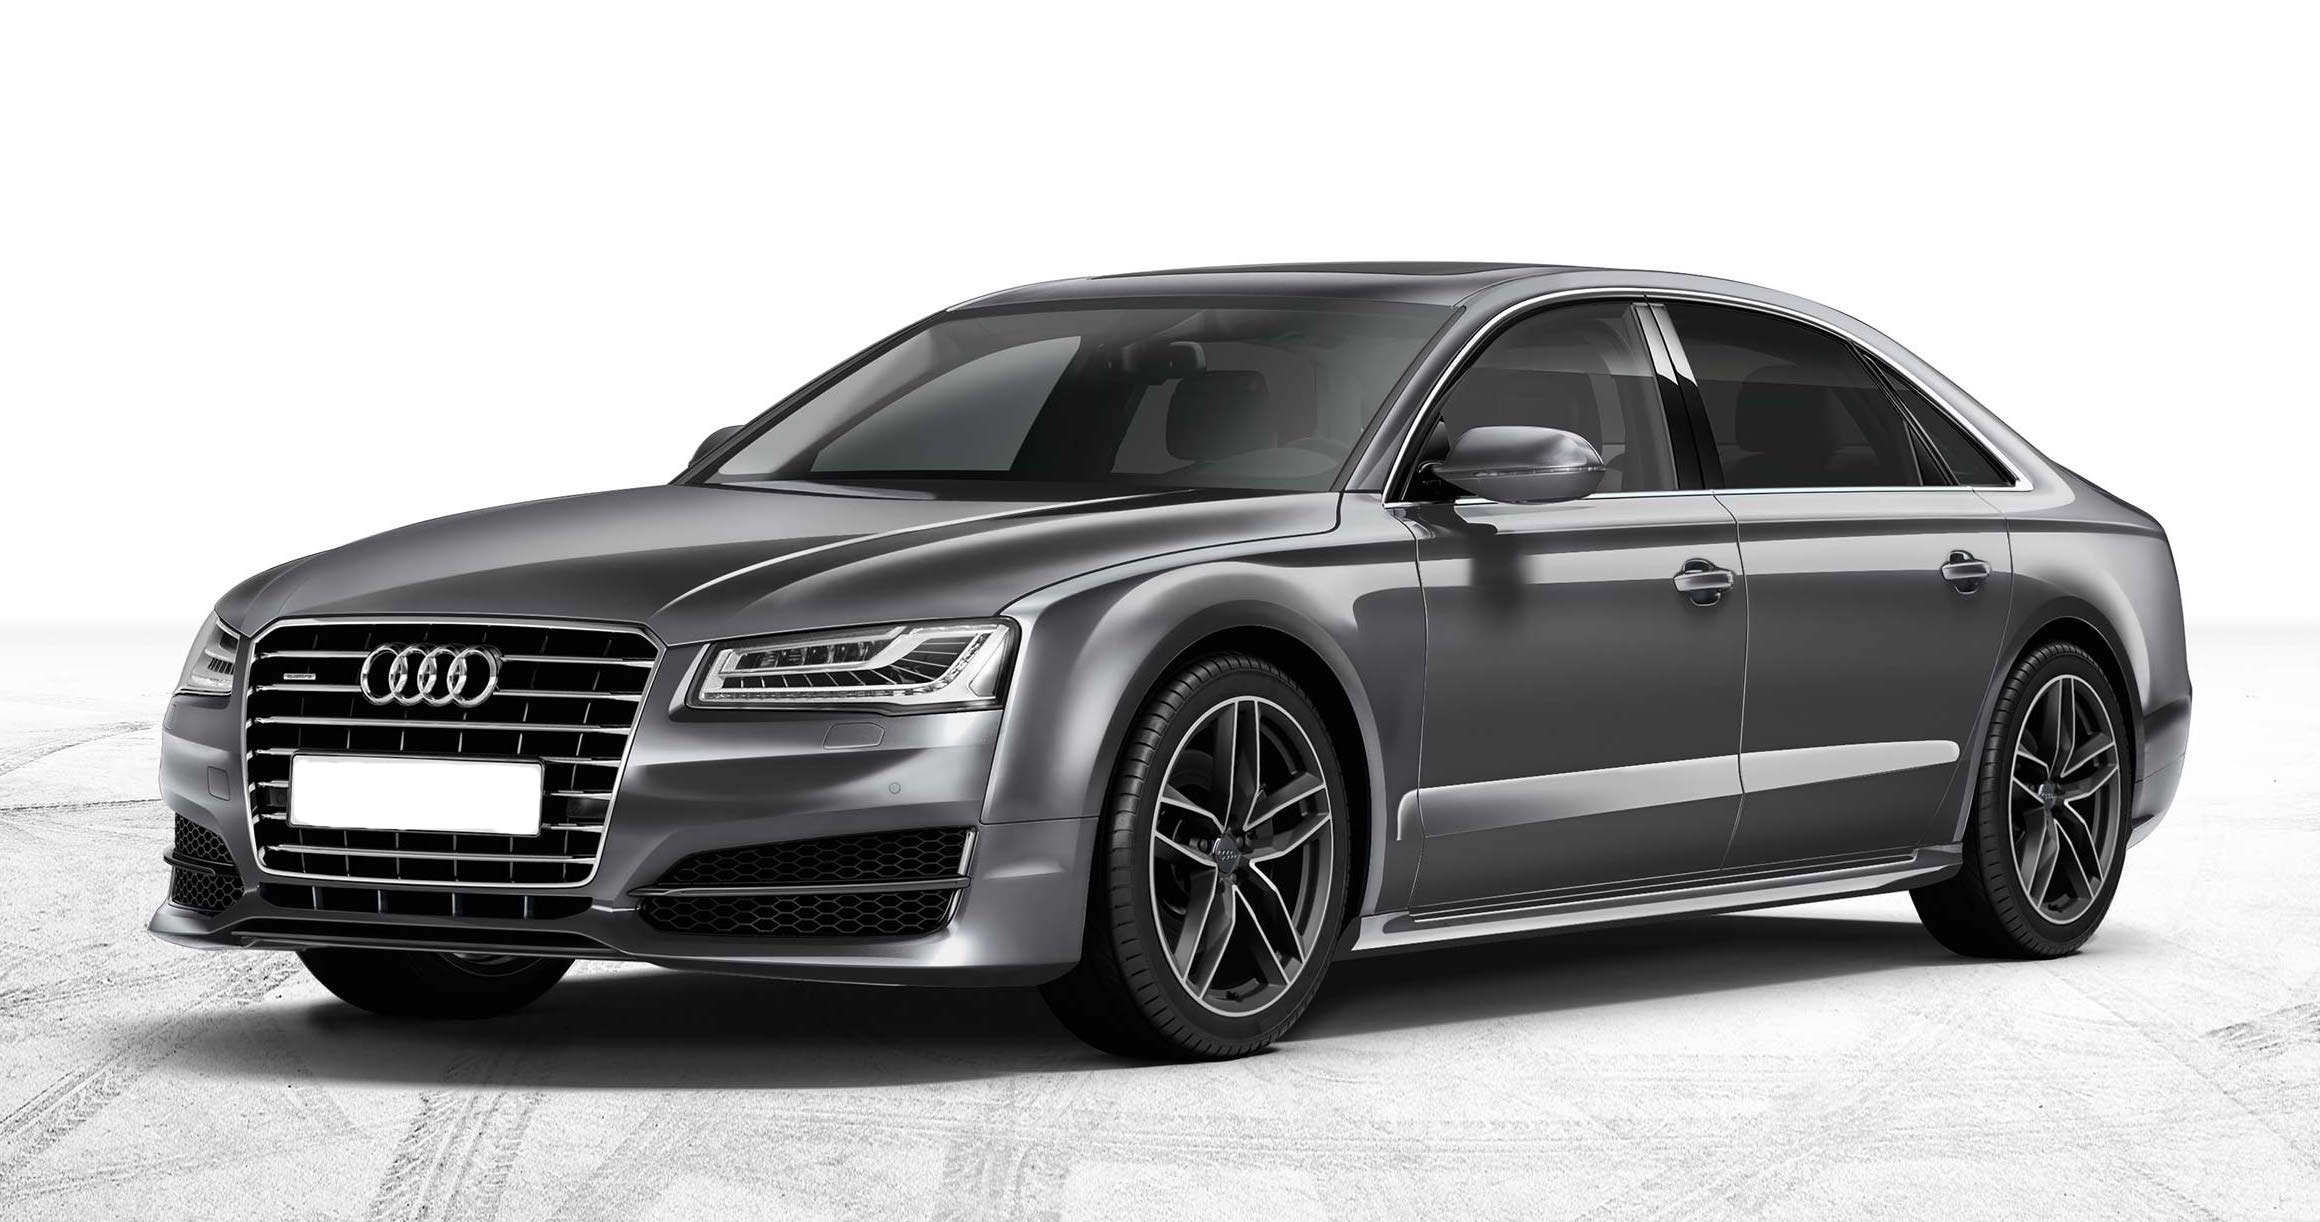 Audi A8 LWB - Chauffeur-driven car hire - Cobham, Surrey